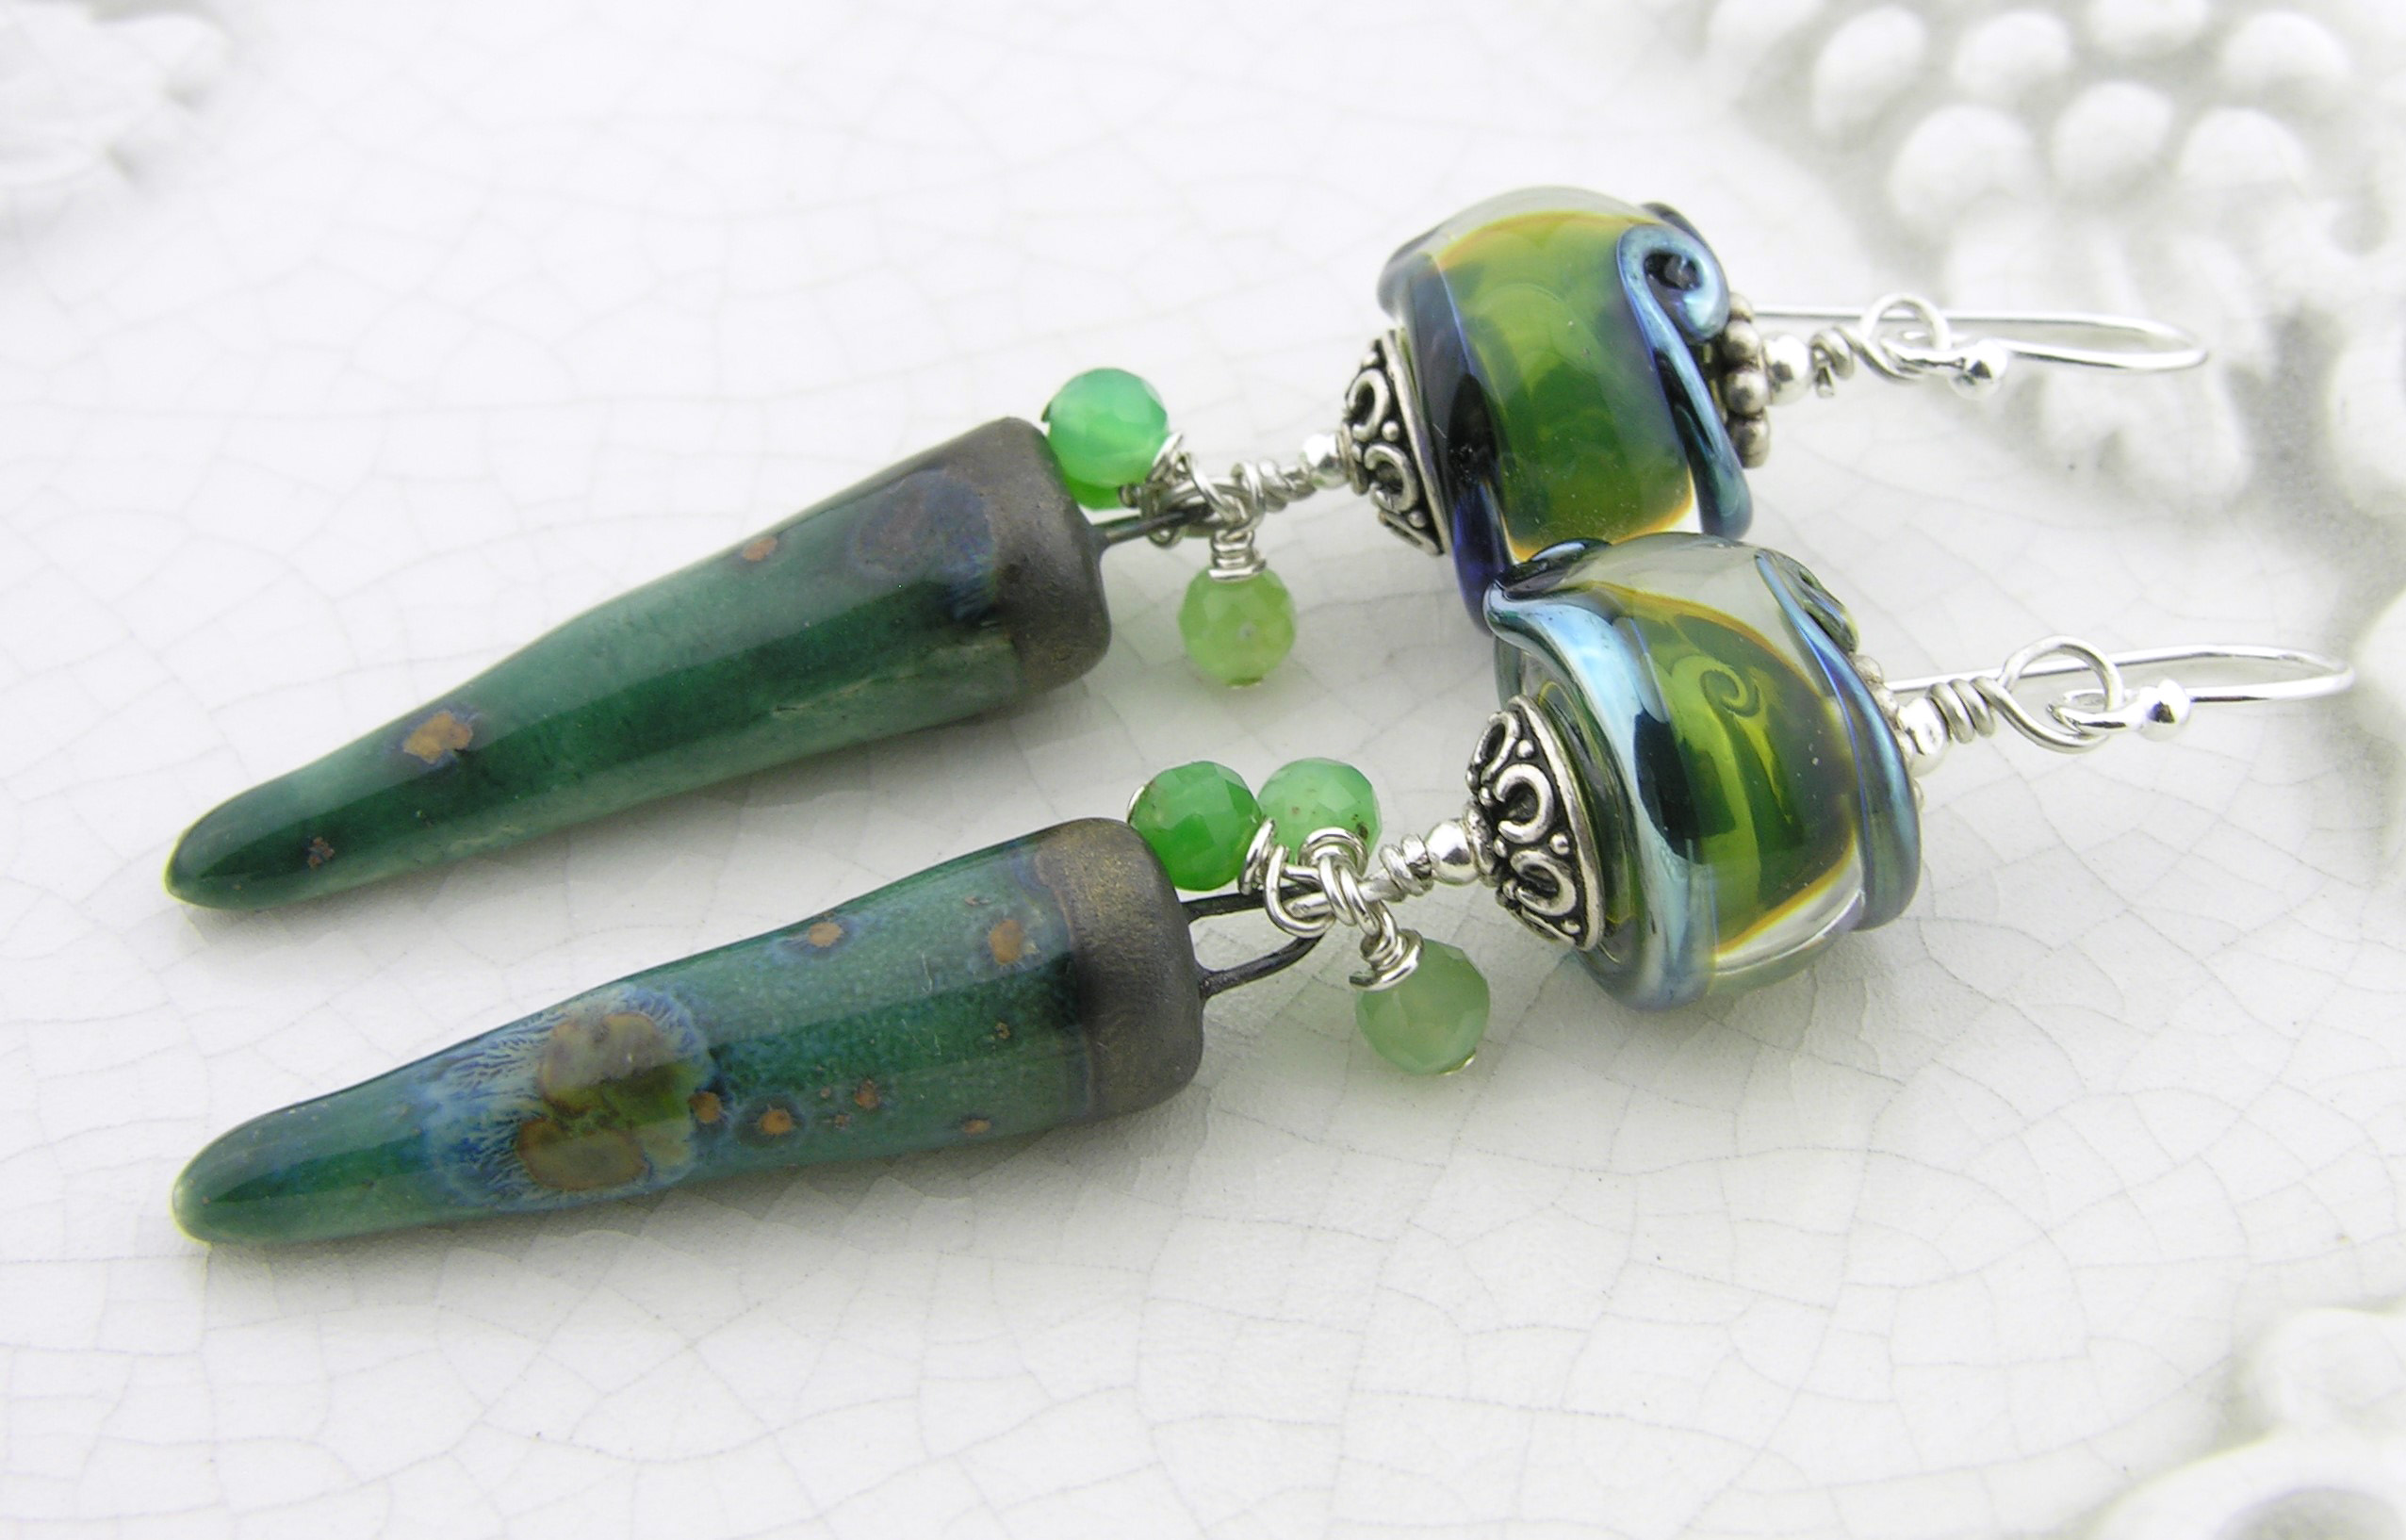 Lady of the Green Kirtle Earrings - Handmade green earrings with chrysoprase gemstones, glowing green and metallic artisan lampwork, organic green ceramic spikes and sterling silver